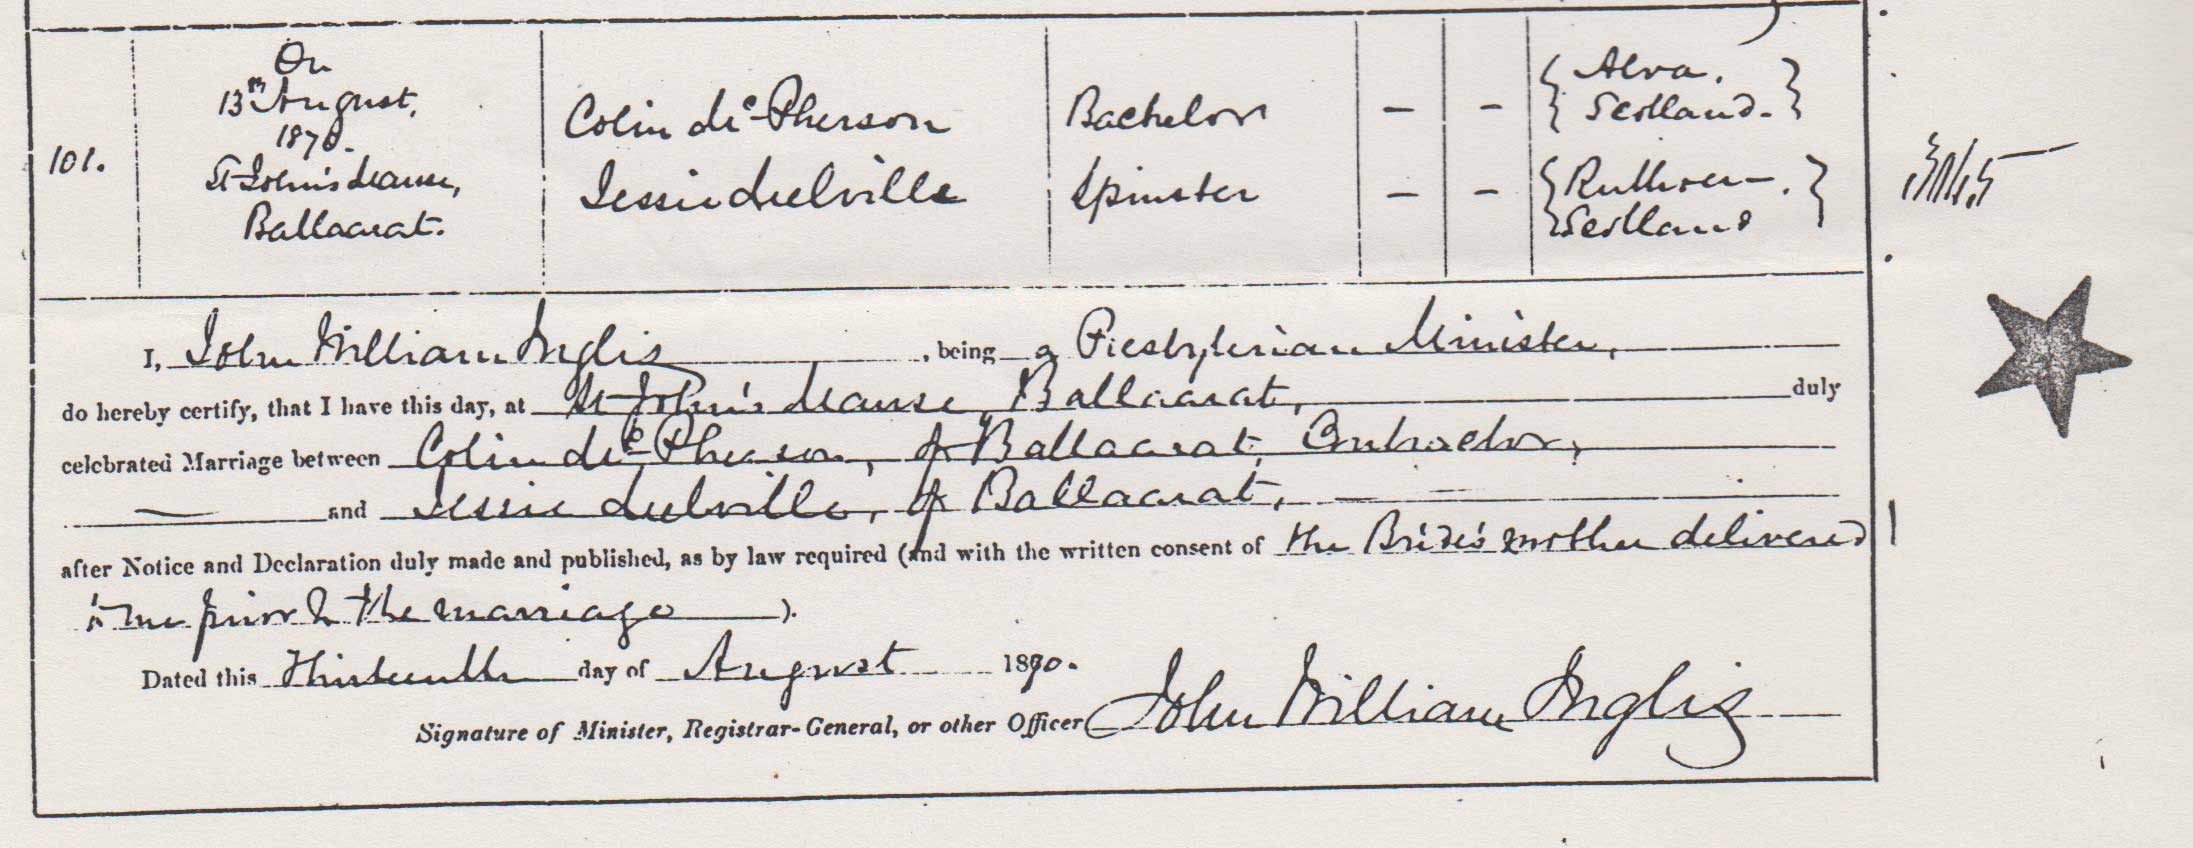 Colin McPherson and Jessie Melville marriage certificate part 1